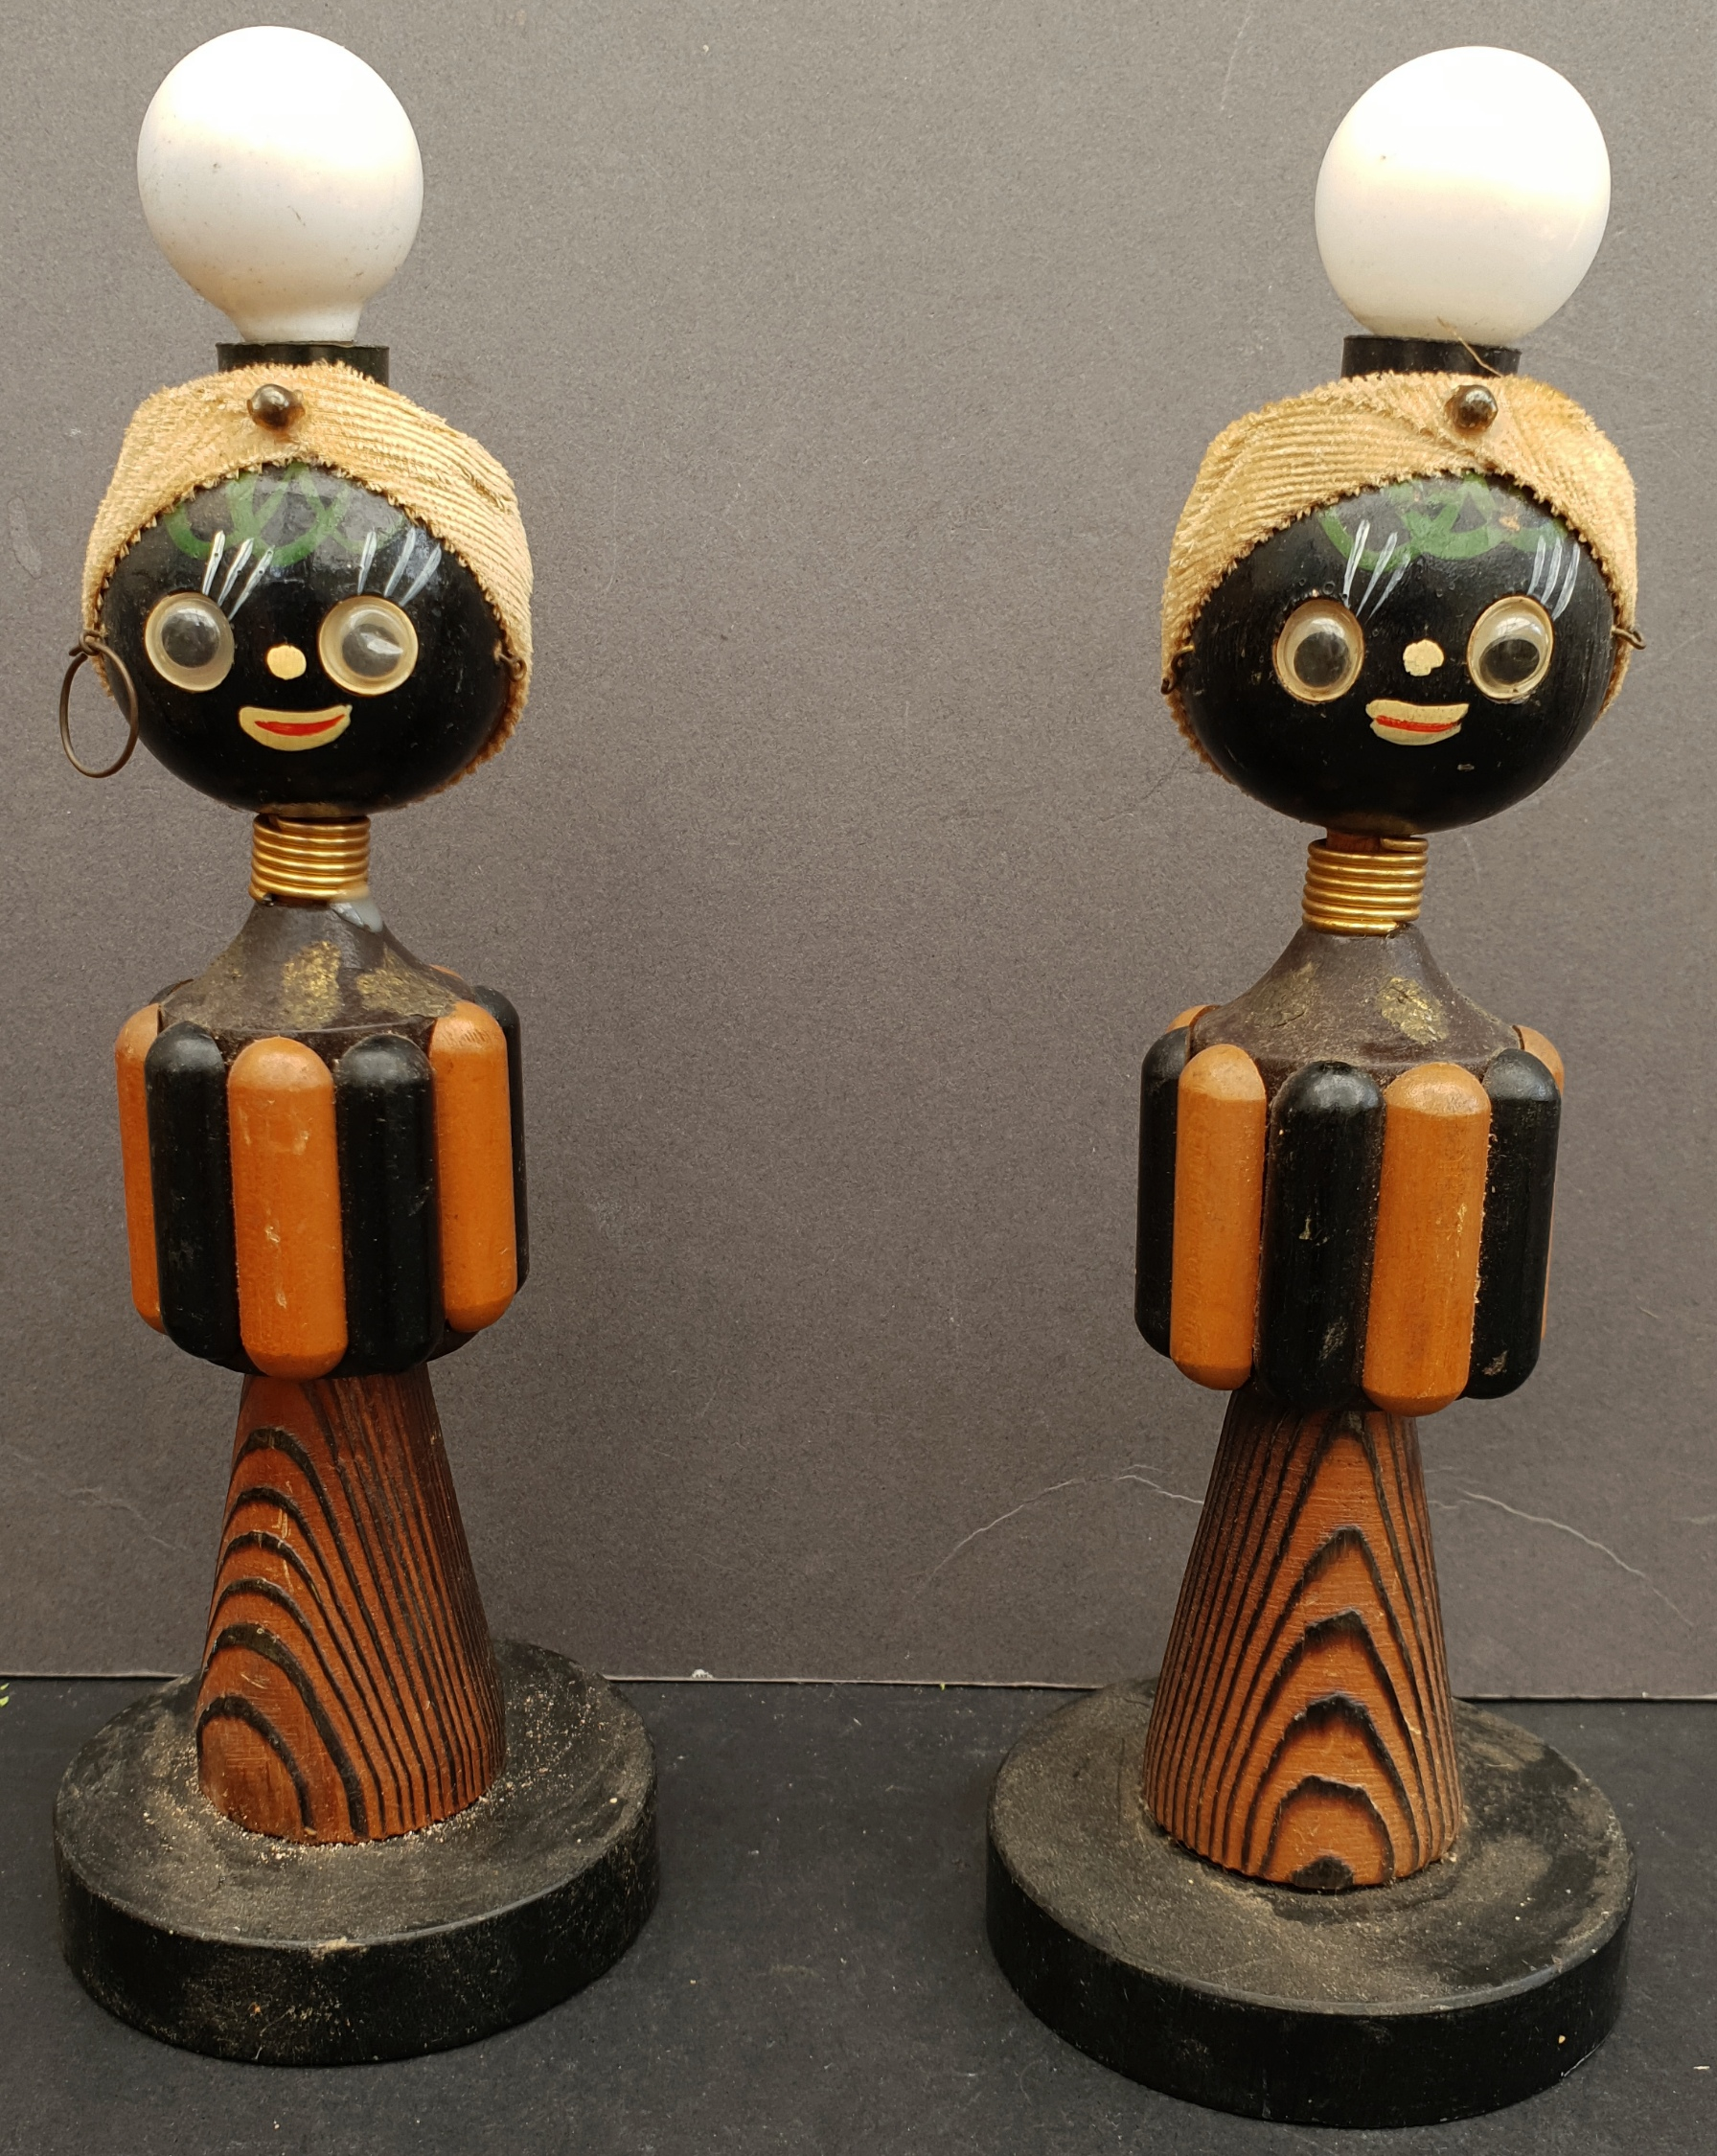 Antique Vintage Table Lights Ethnic Caricatures - Image 2 of 2